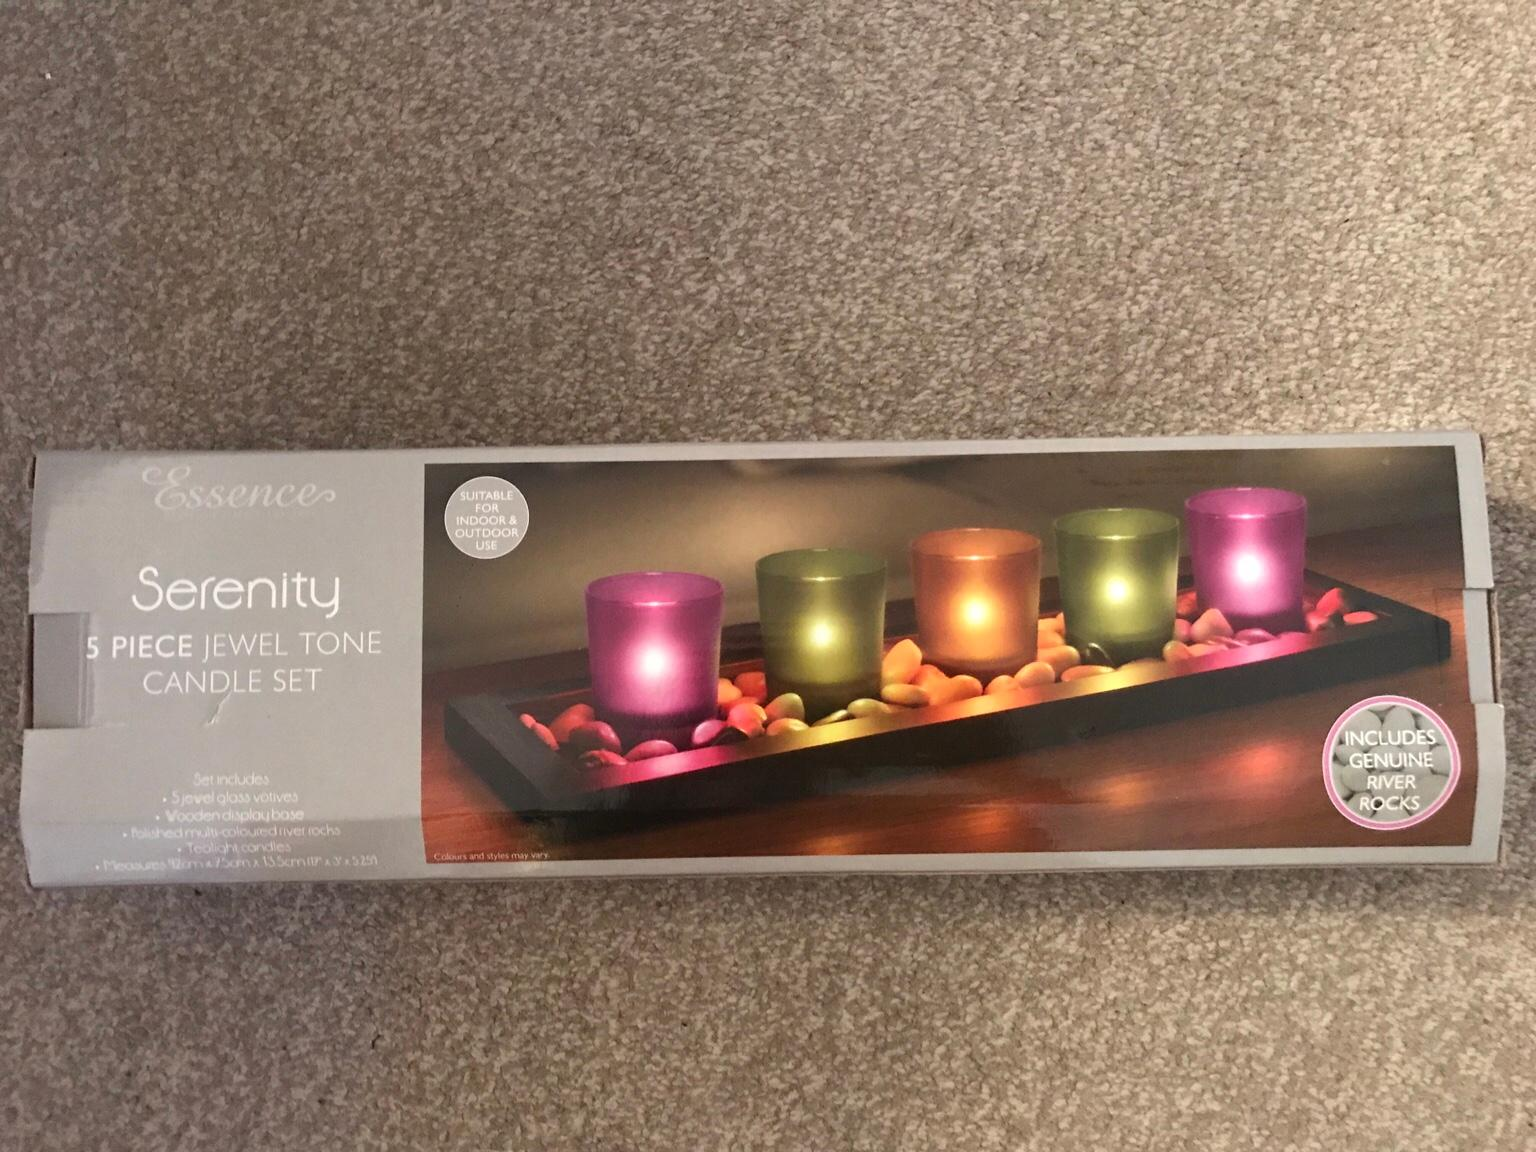 Essence 4 pieces Candle Set with wooden base and Tealights